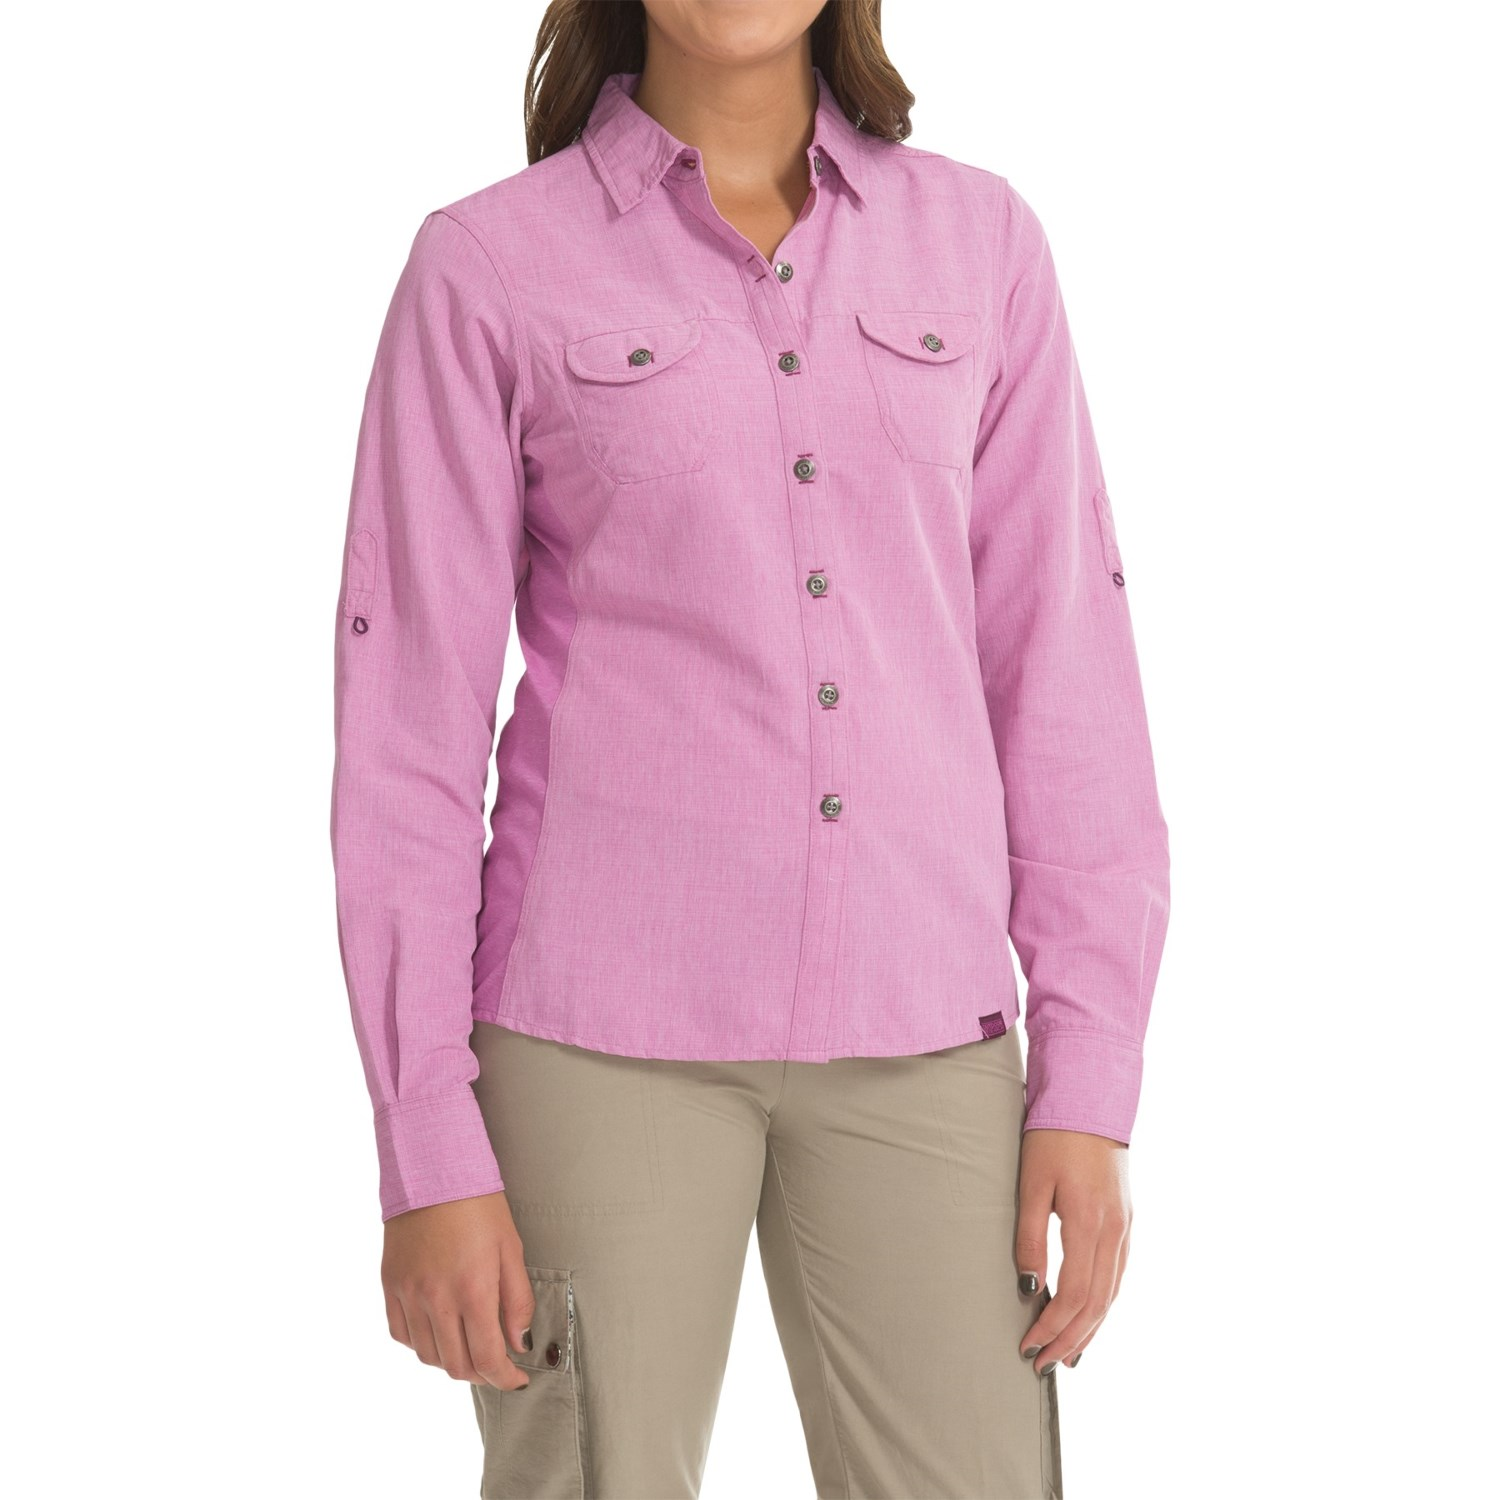 Outdoor research reflection sentinel shirt for women for A long sleeve shirt